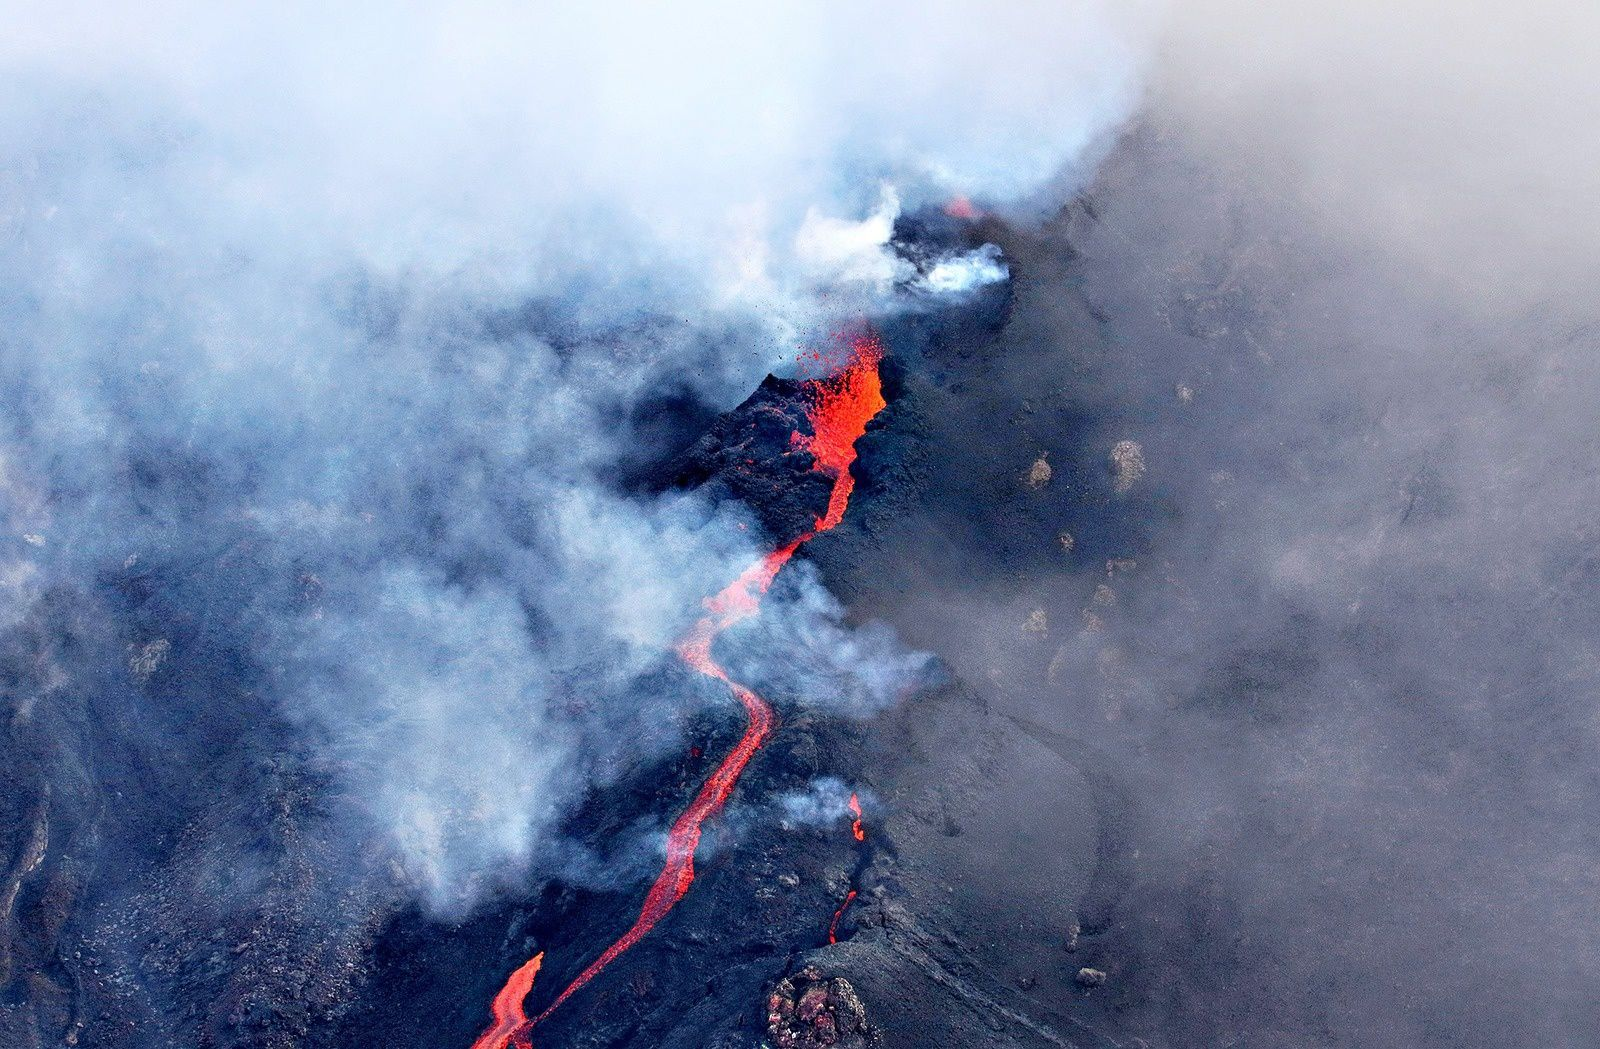 Piton de La Fournaise erupted this May 17, 2015 - photo Officiel Reunitoo, the first web portal of the Reunion Island